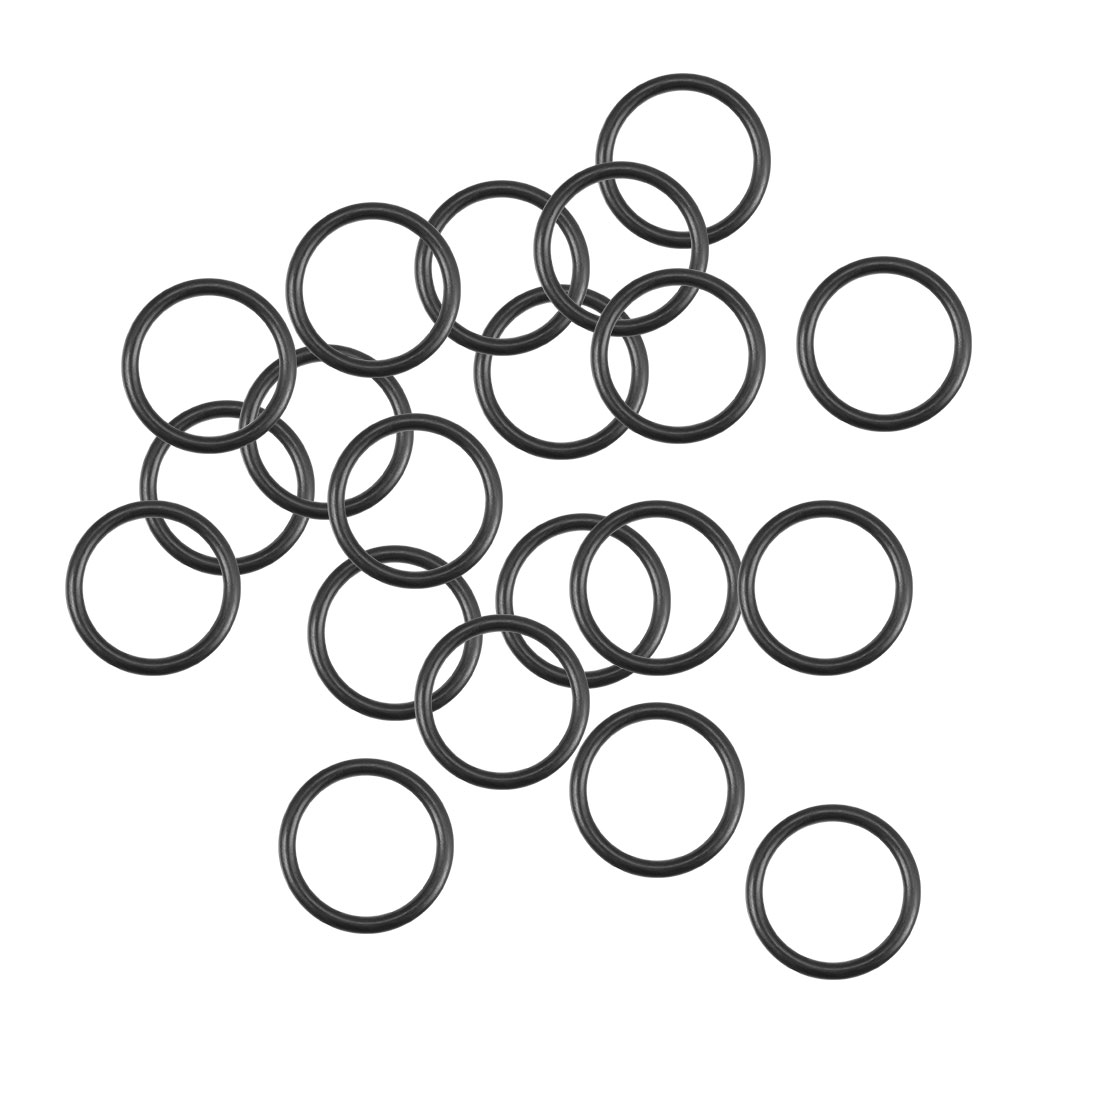 O-Rings Nitrile Rubber 13.5mm x 17.1mm x 1.8mm Round Seal Gasket 20Pcs